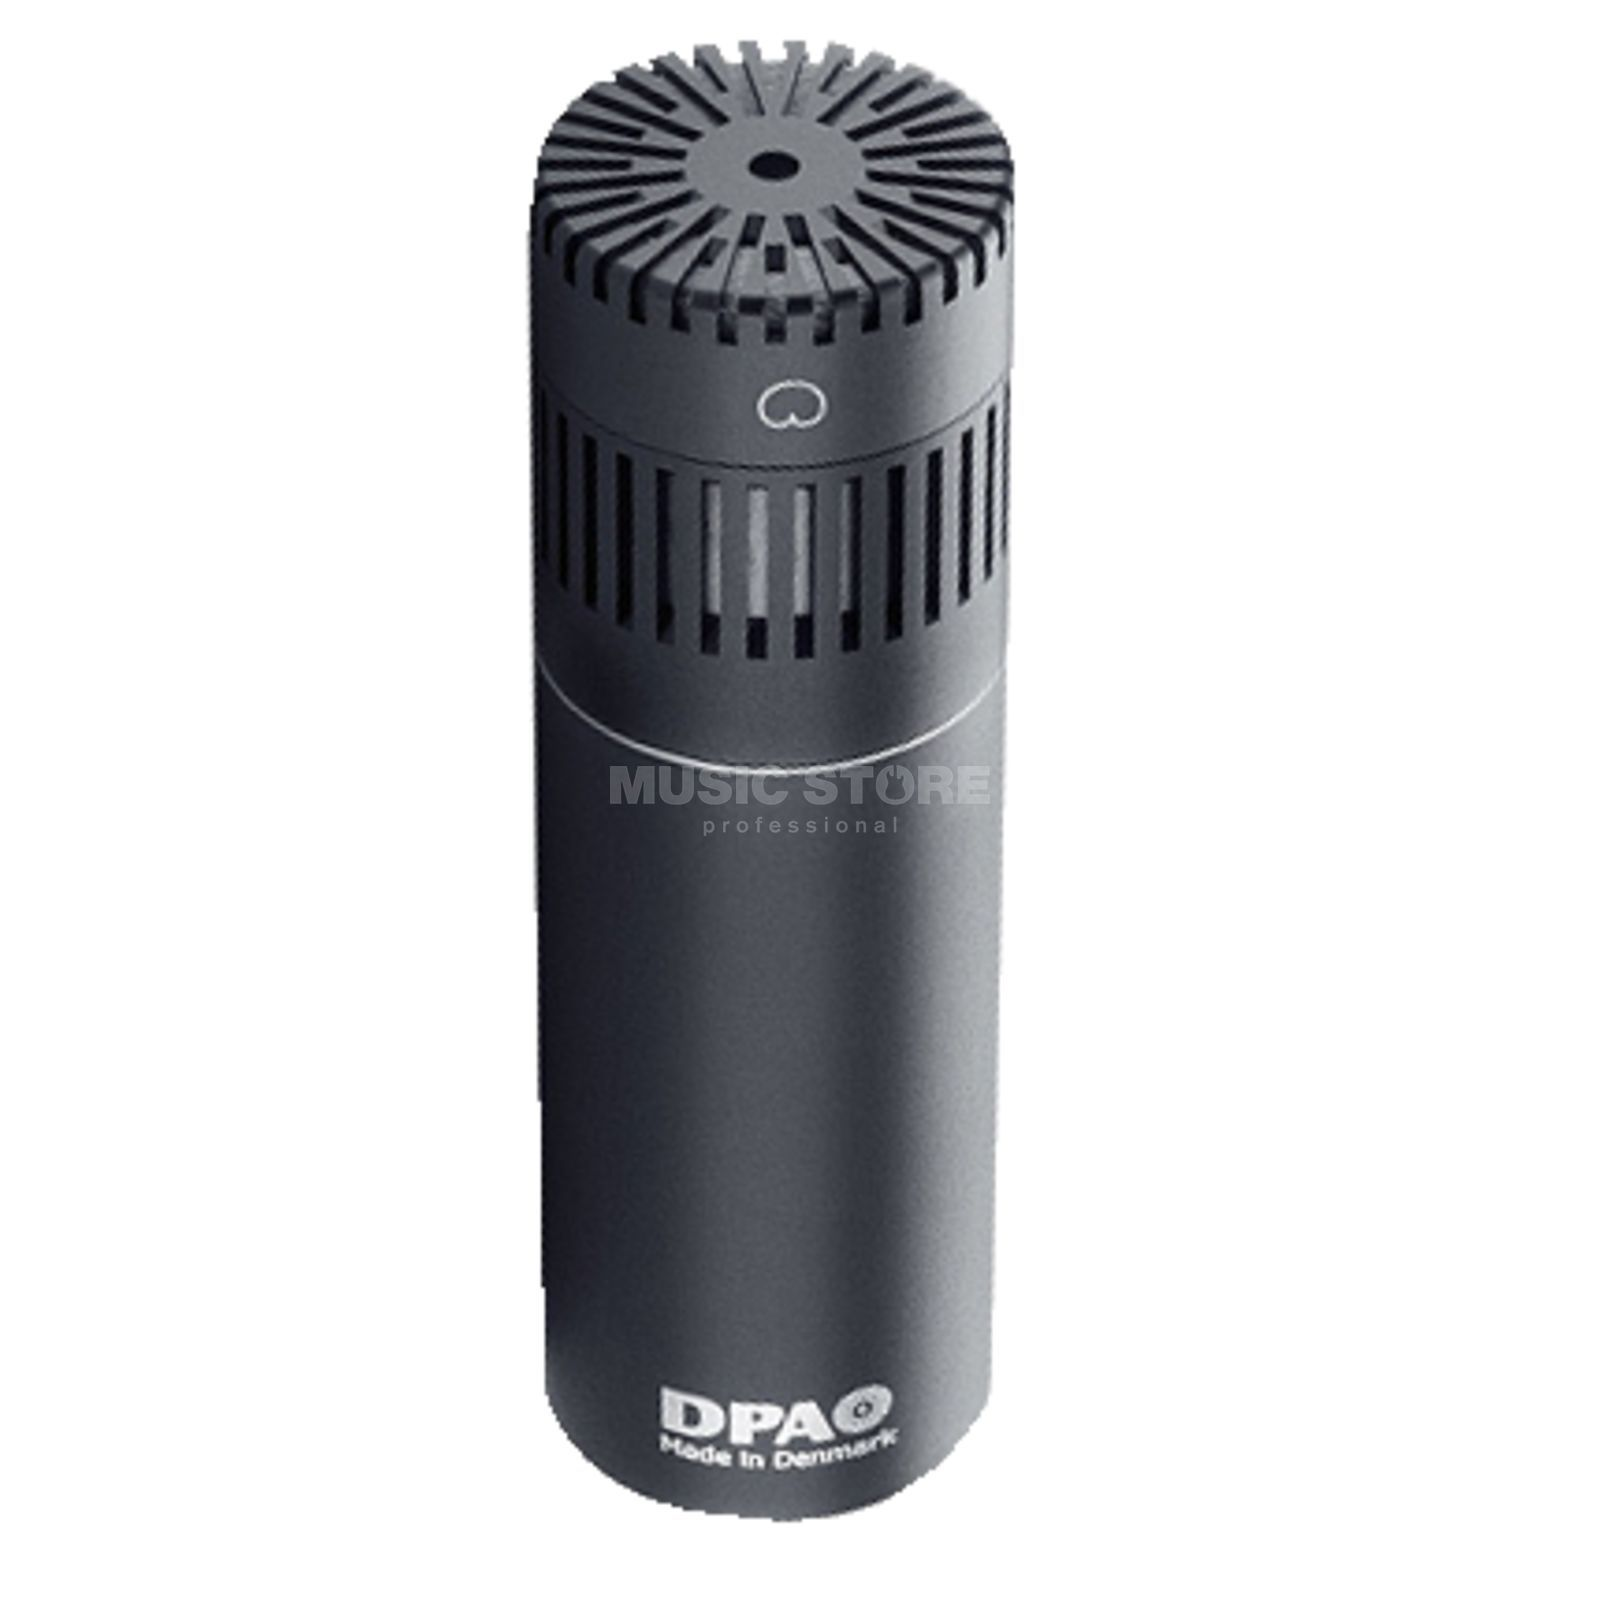 DPA 4011C Compact Cardioid Microphone Produktbillede